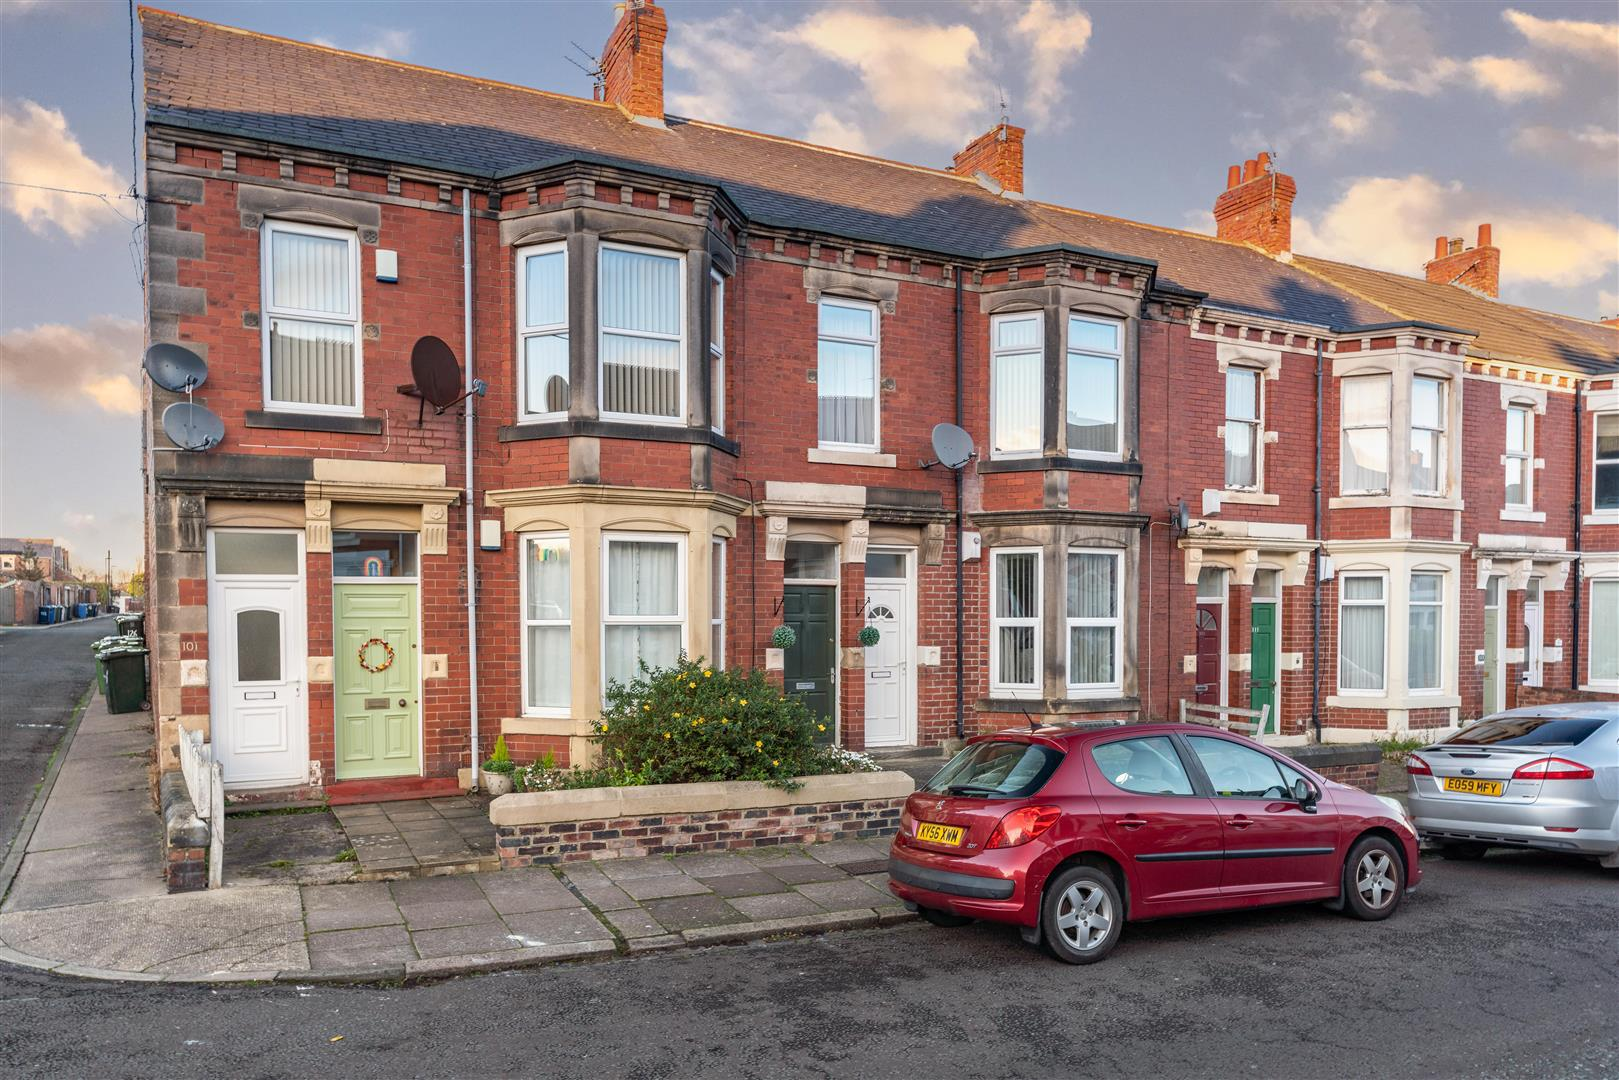 3 bed flat for sale in Newcastle Upon Tyne, NE6 5SJ - Property Image 1